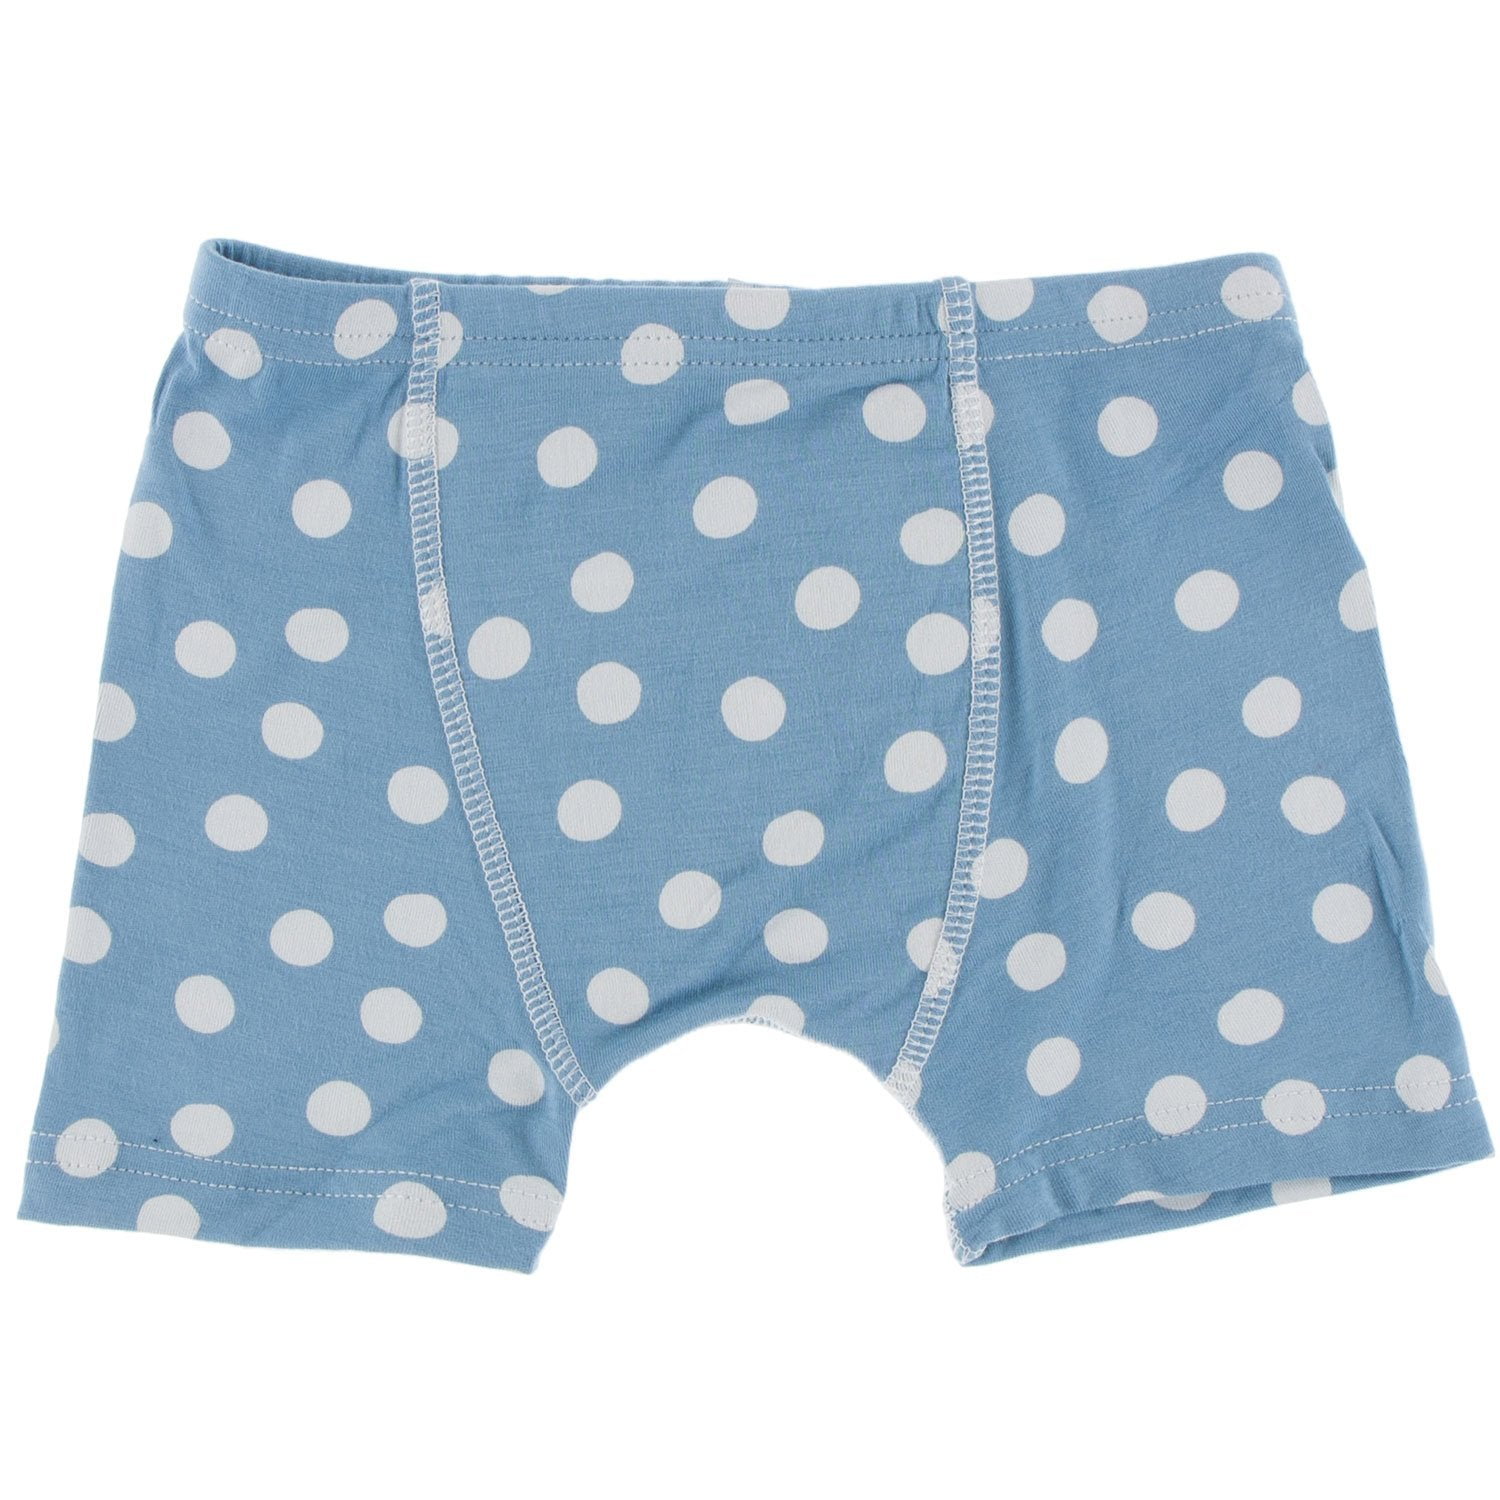 Print Boxer Brief - Blue Moon Snowballs